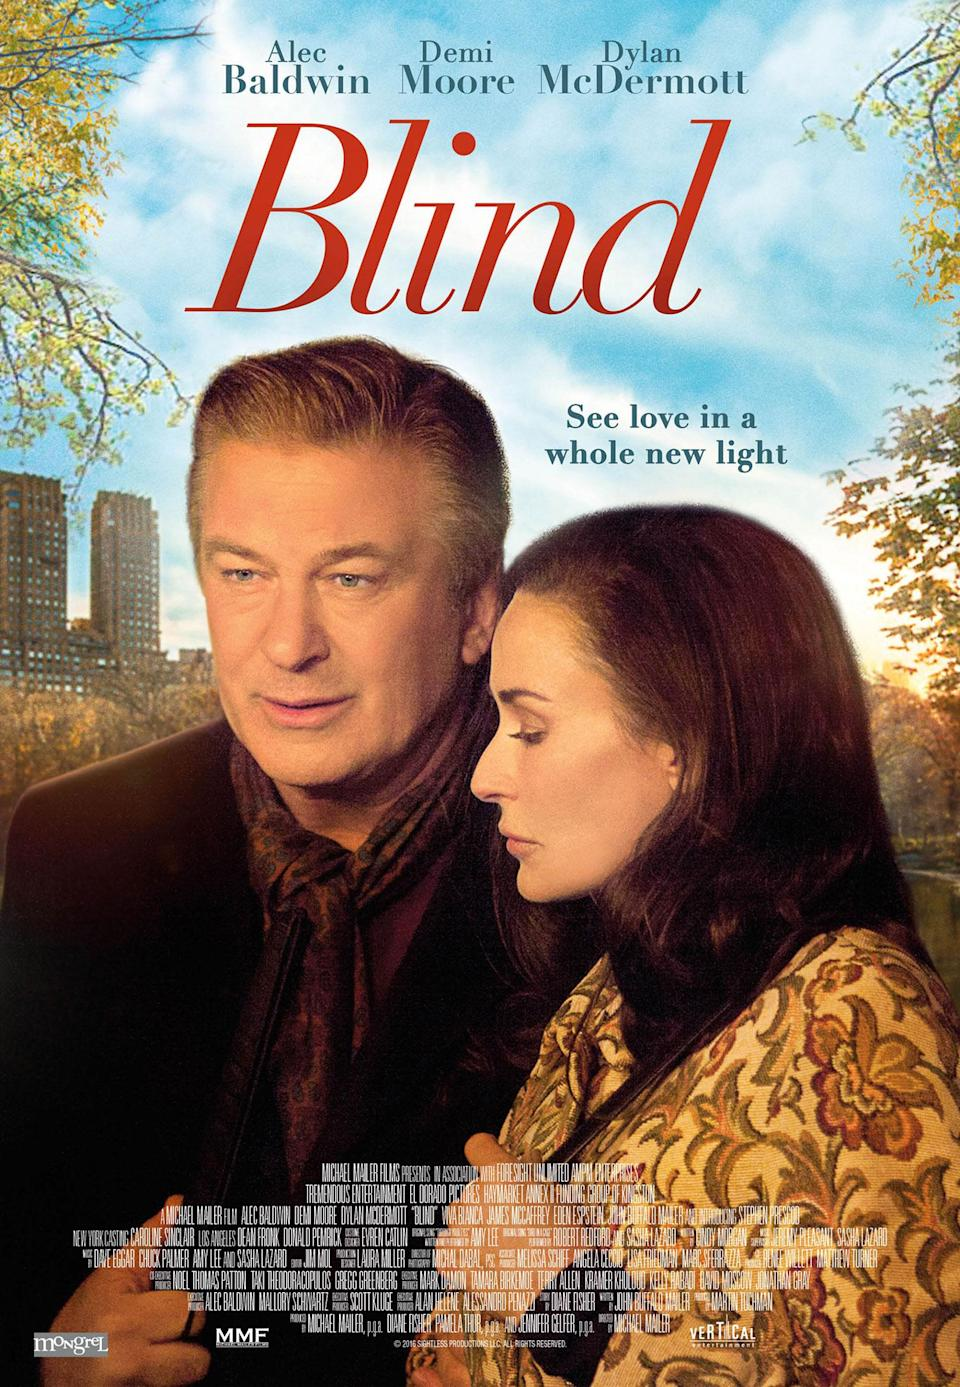 <p>Alec Baldwin here, doing the classic 'blind acting' move of looking slightly off camera. See? Blind. It's not Baldwin's fault, but this poster almost looks like the kind of cheesy movie poster parody you'd see in an episode of '30 Rock' – you half expect to see the strapline 'From the director of The Rural Juror'. </p>